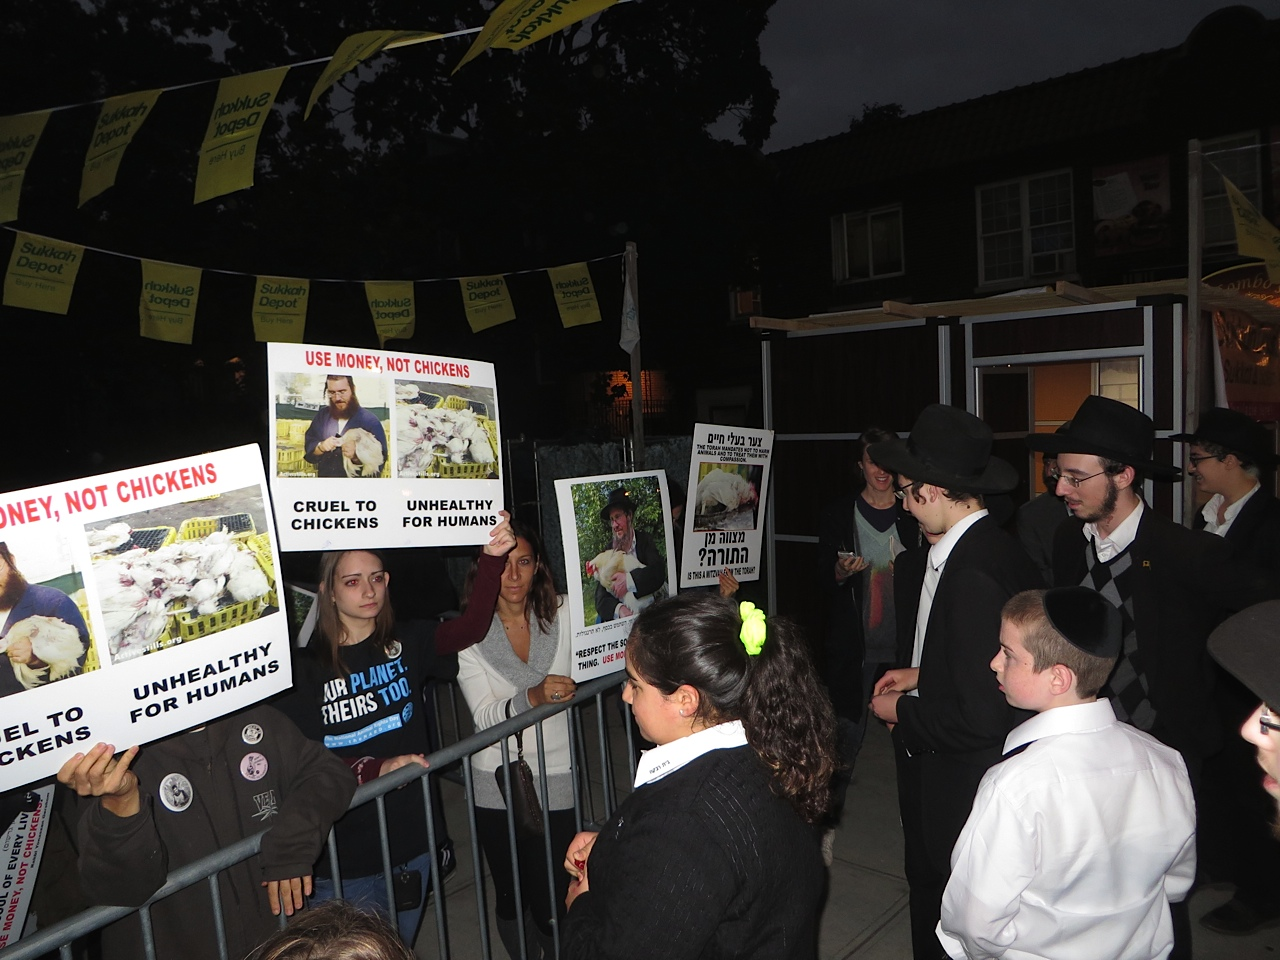 By and large, the practitioners cannot relate to the protesters' concerns about the chickens